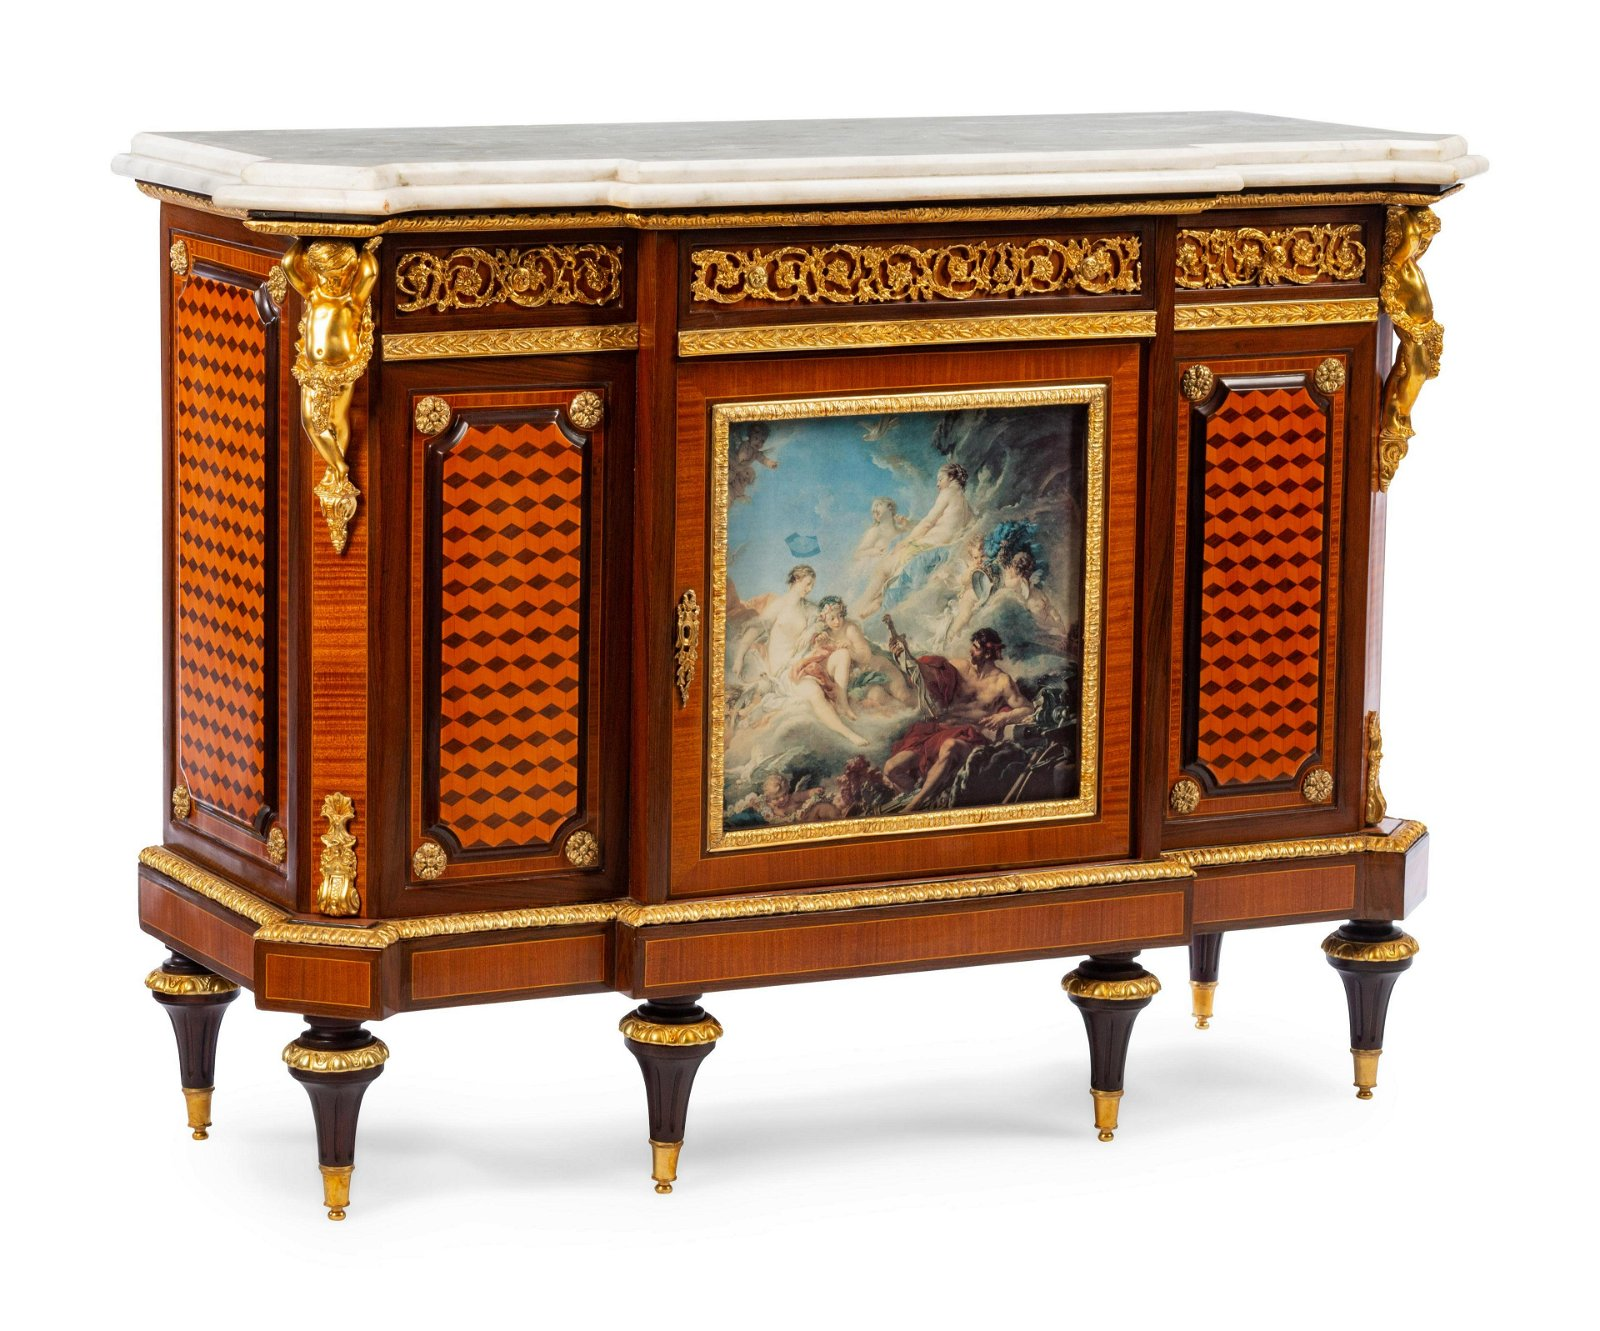 A Louis XVI Style Gilt Bronze Mounted Cabinet